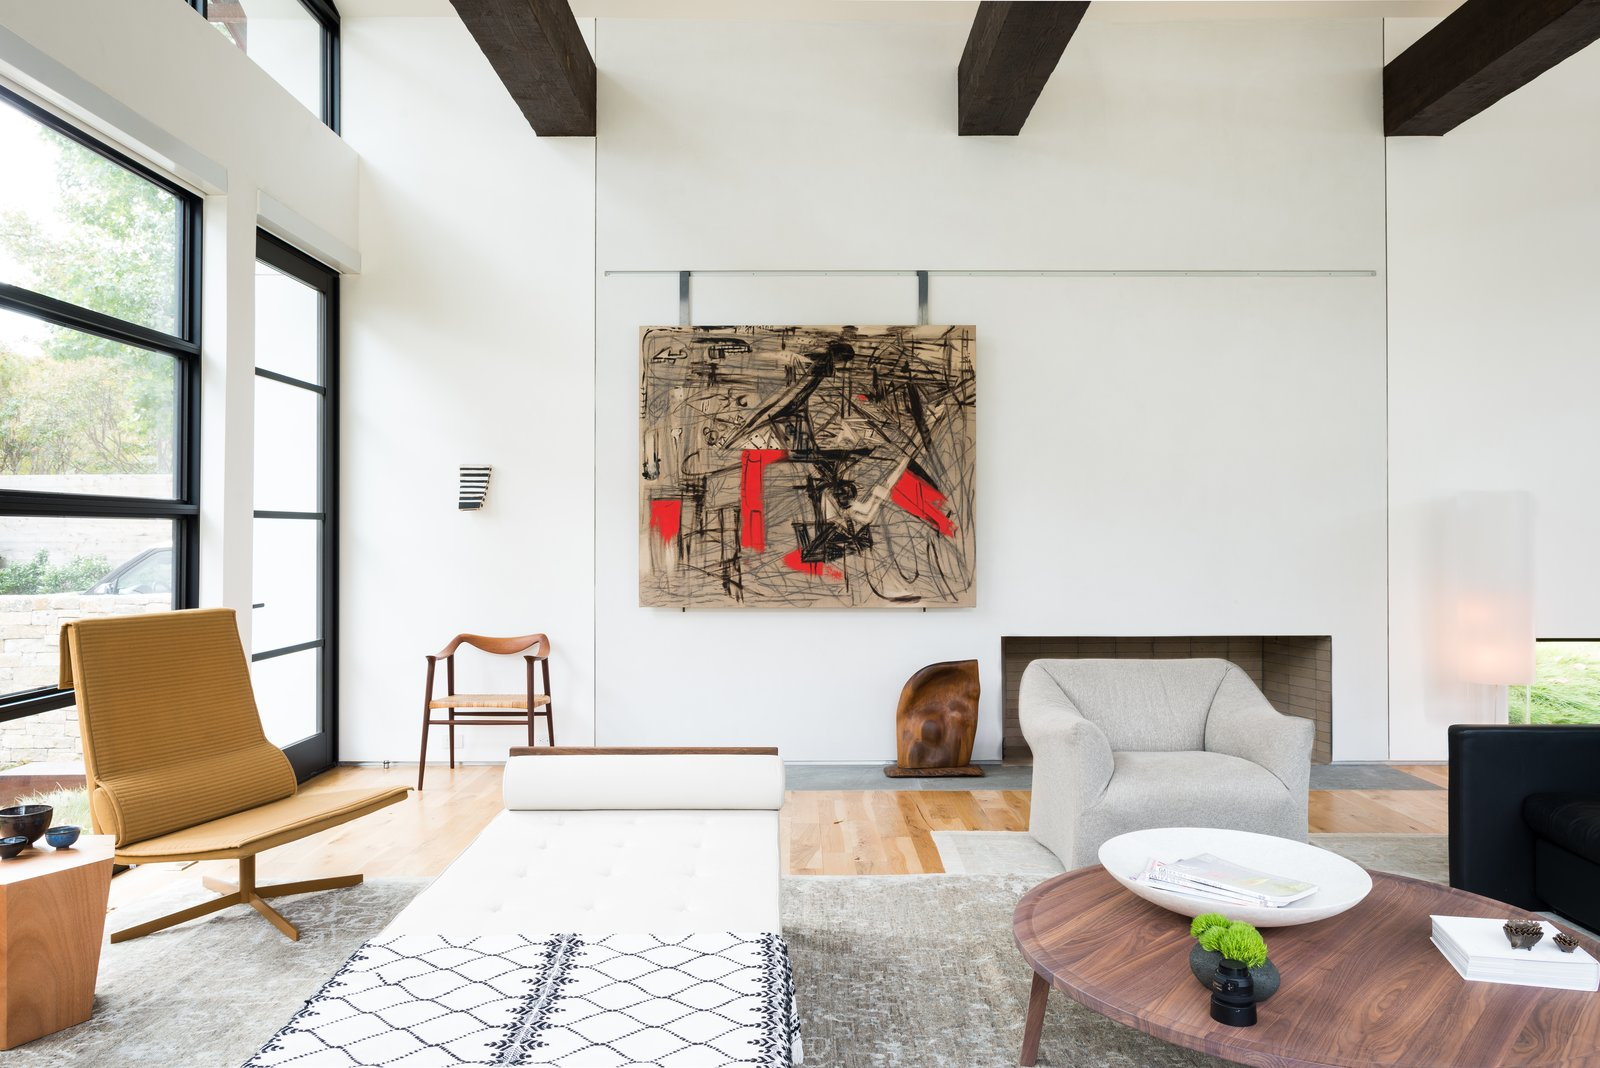 """Rice faced the same challenge of creating modern yet family-friendly interiors. He settled on a warm, muted palette with lots of texture. The space features a mix of comfortable seating with more unique, collectible pieces — like the Jean Prouvé daybed or Vincent van Duysen chairs by the window. """"I wanted the space to feel like a home rather than a museum,"""" Rice says.  Preston Hollow by Laura C. Mallonee"""